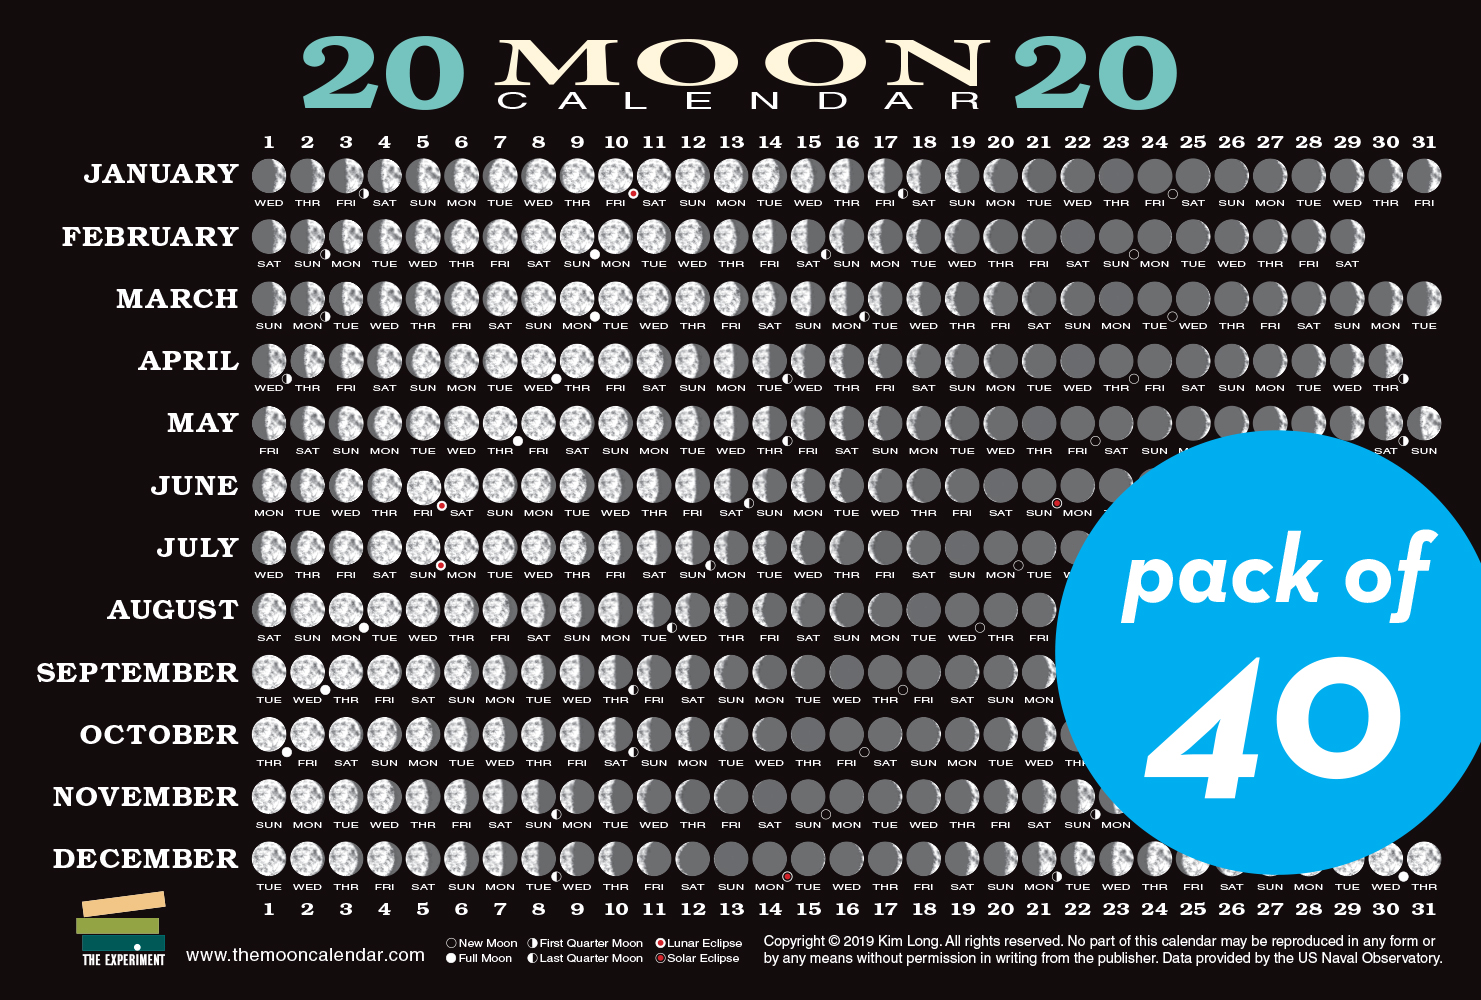 2020 February Moon Calendar 2020 Moon Calendar Card (40 pack)   Workman Publishing